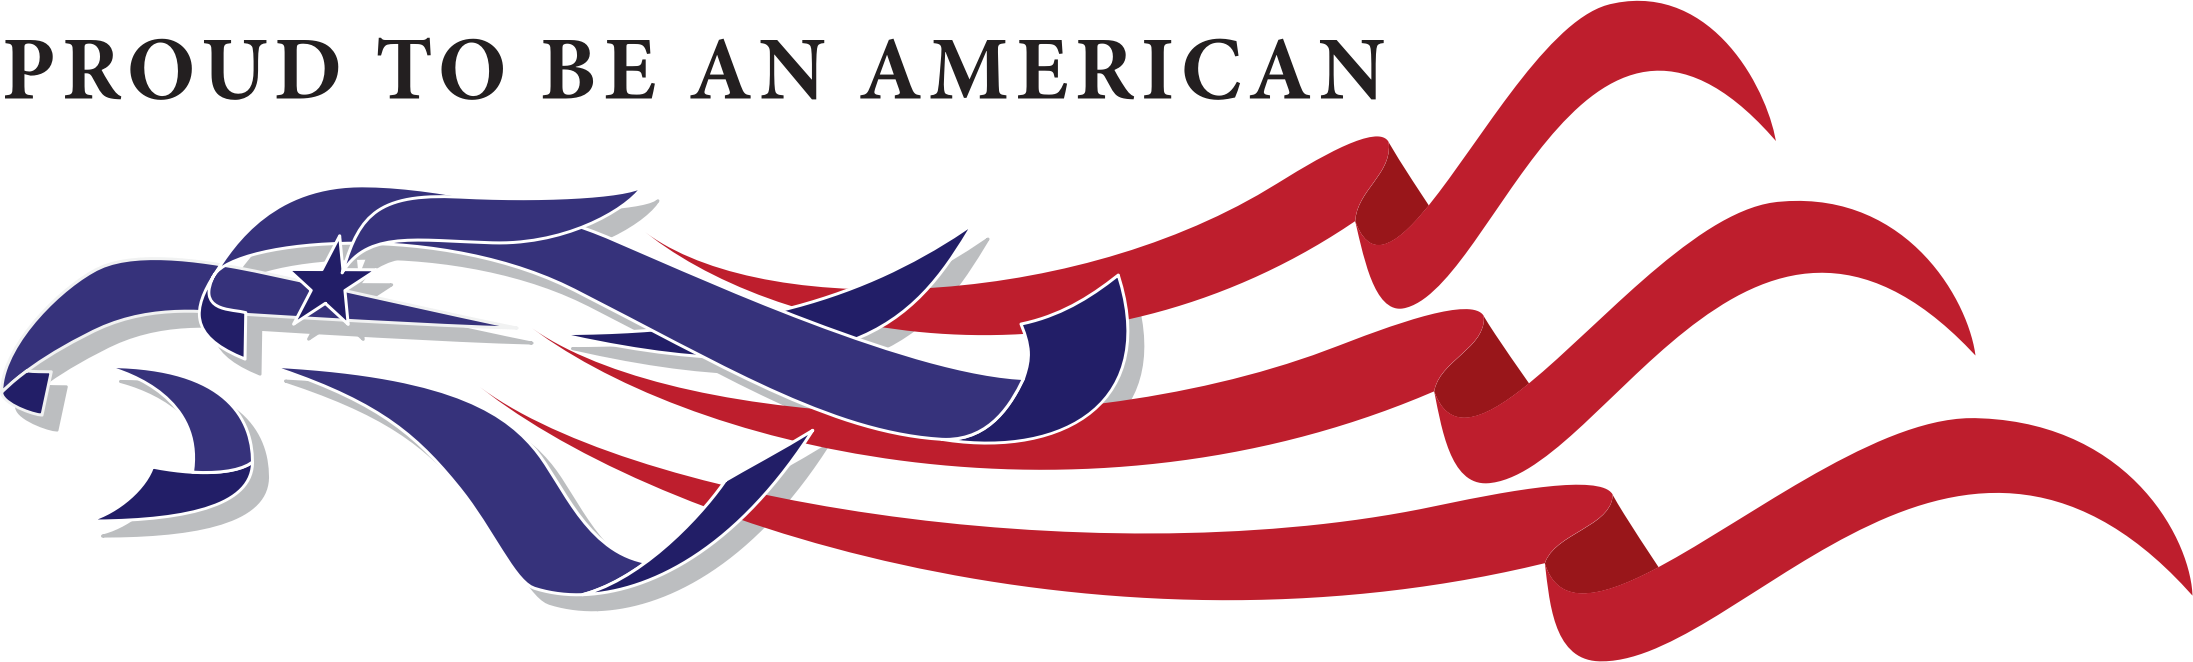 clipart library American clipart. Proud to be an